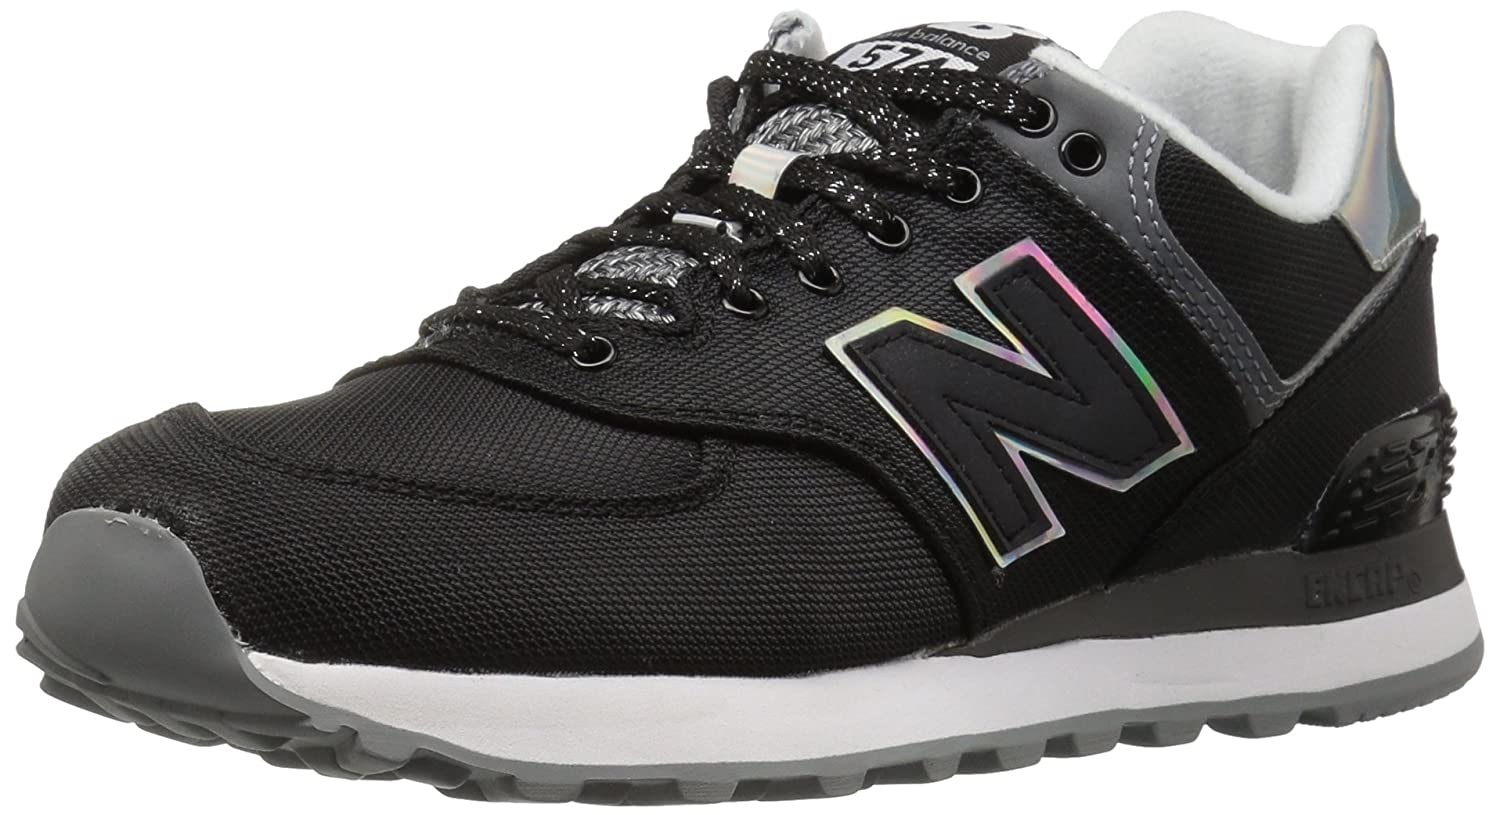 New Balance Women's WL574V1 Fashion Sneaker B01GRMFWHU 5 B(M) US|Black/Gunmetal